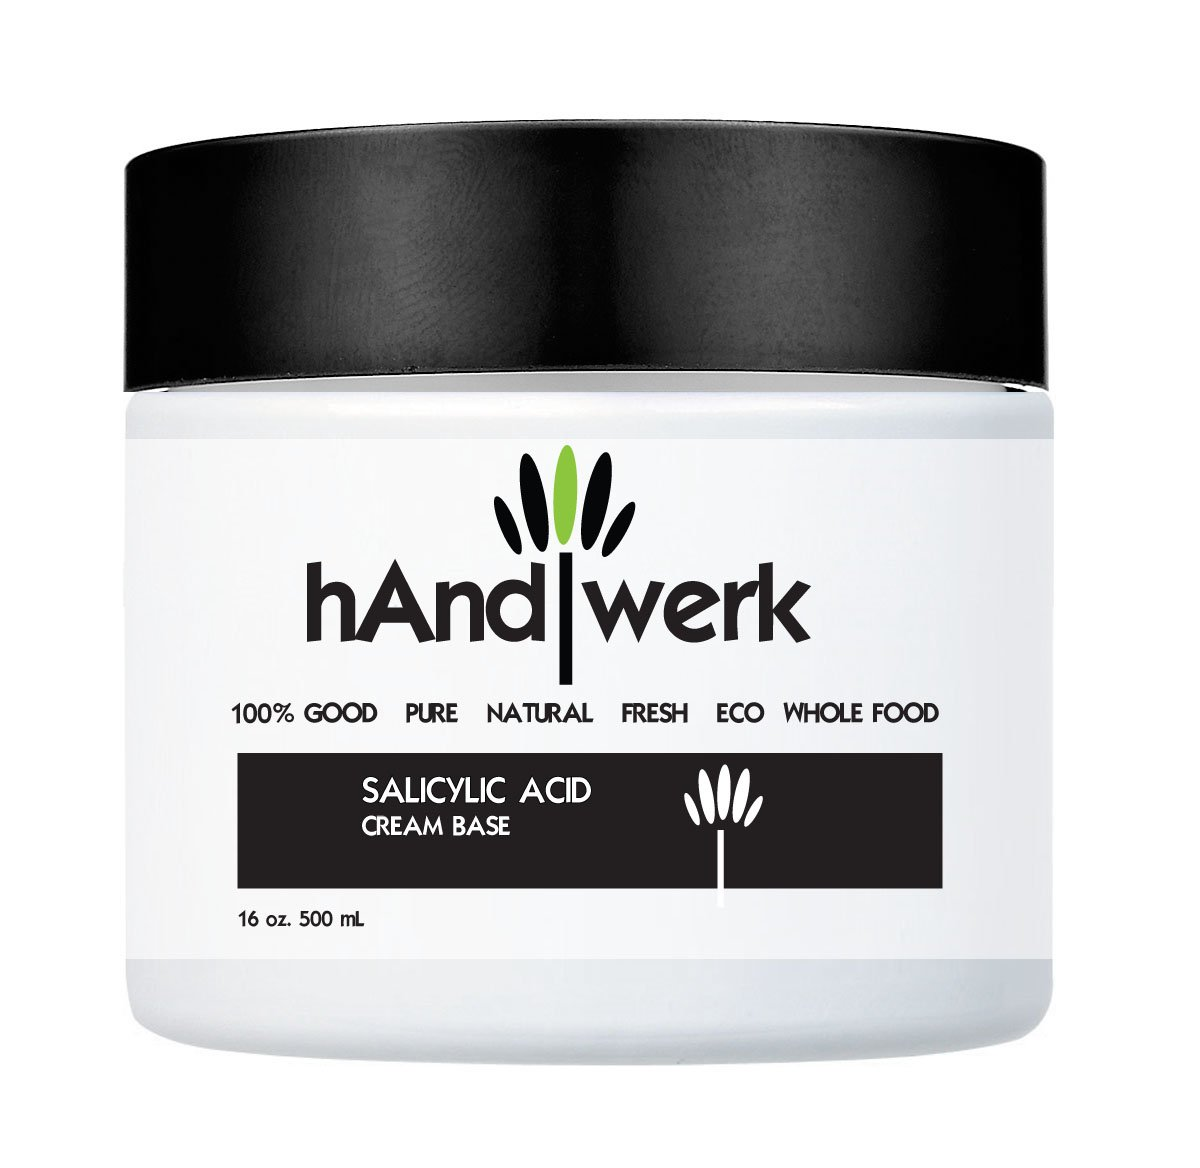 Handwerk� Salicylic Acid Anti  -Acne, Anti - Psoriasis, Anti - Dermatitis Cream Base